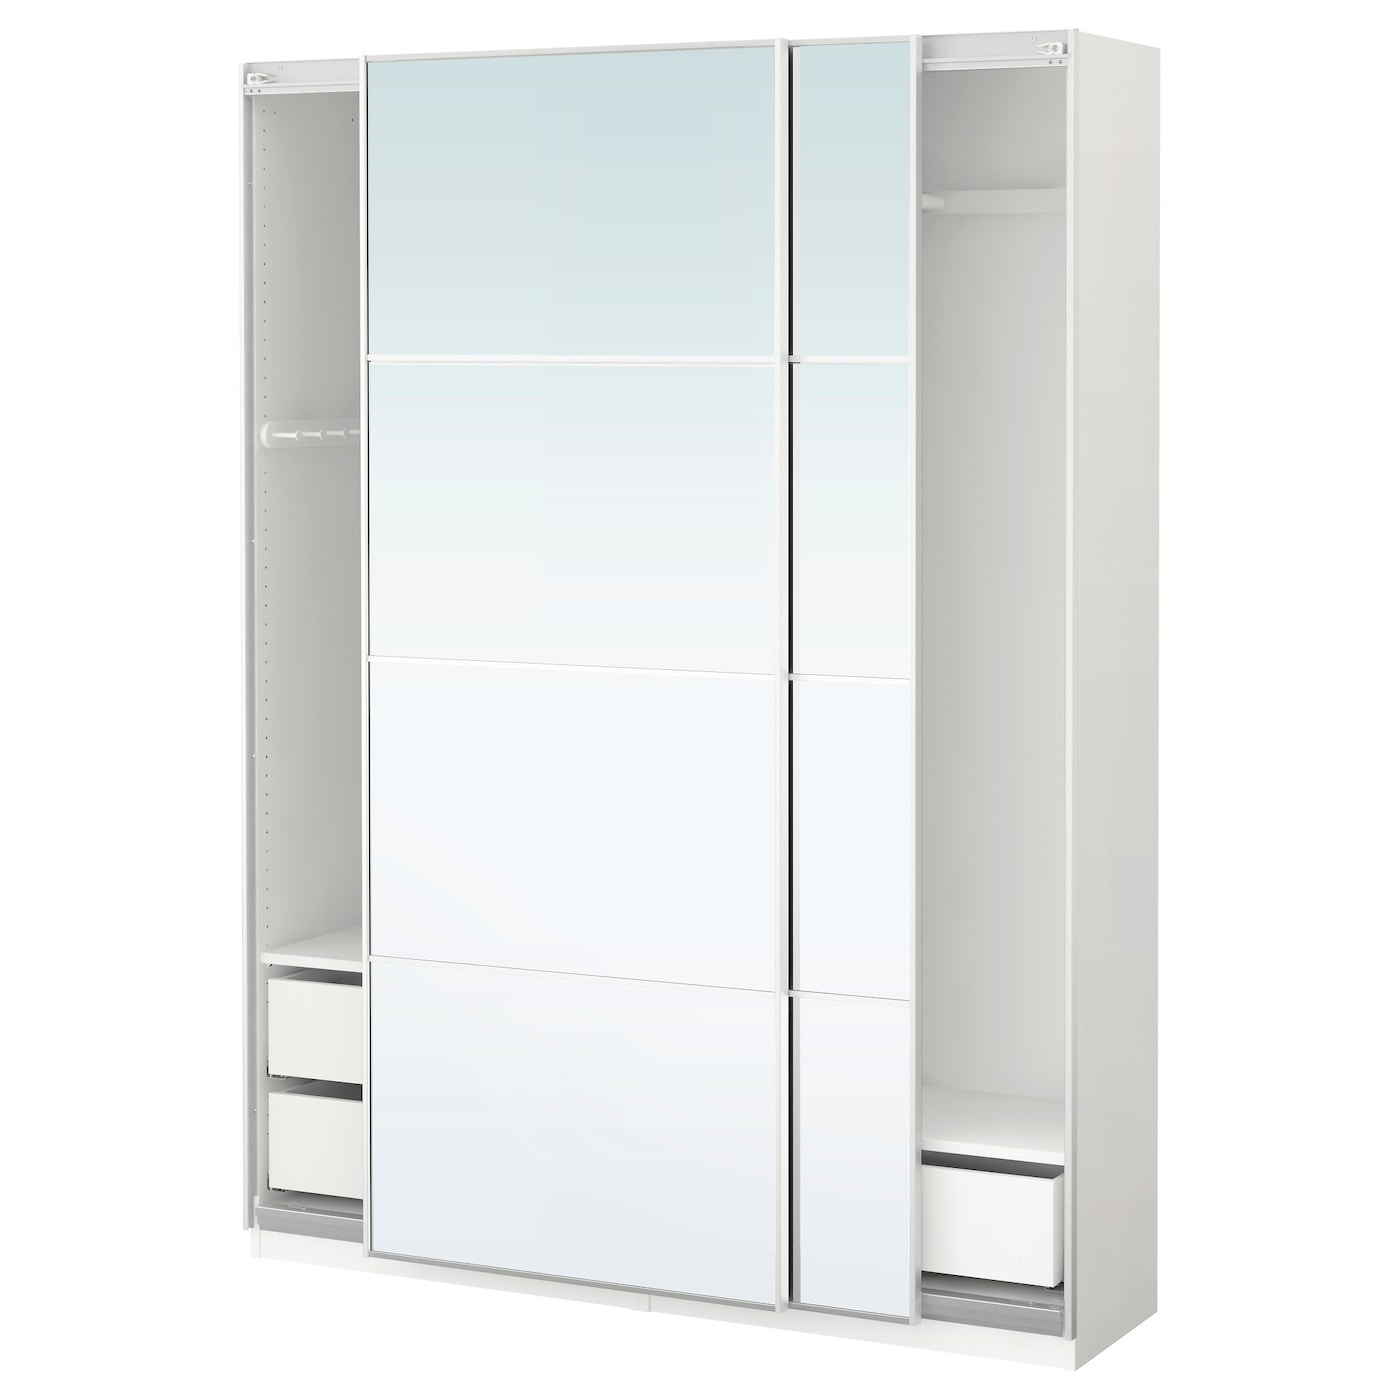 Pax wardrobe white auli mirror glass 150 x 44 x 201 cm ikea - Ikea armoire with mirror ...